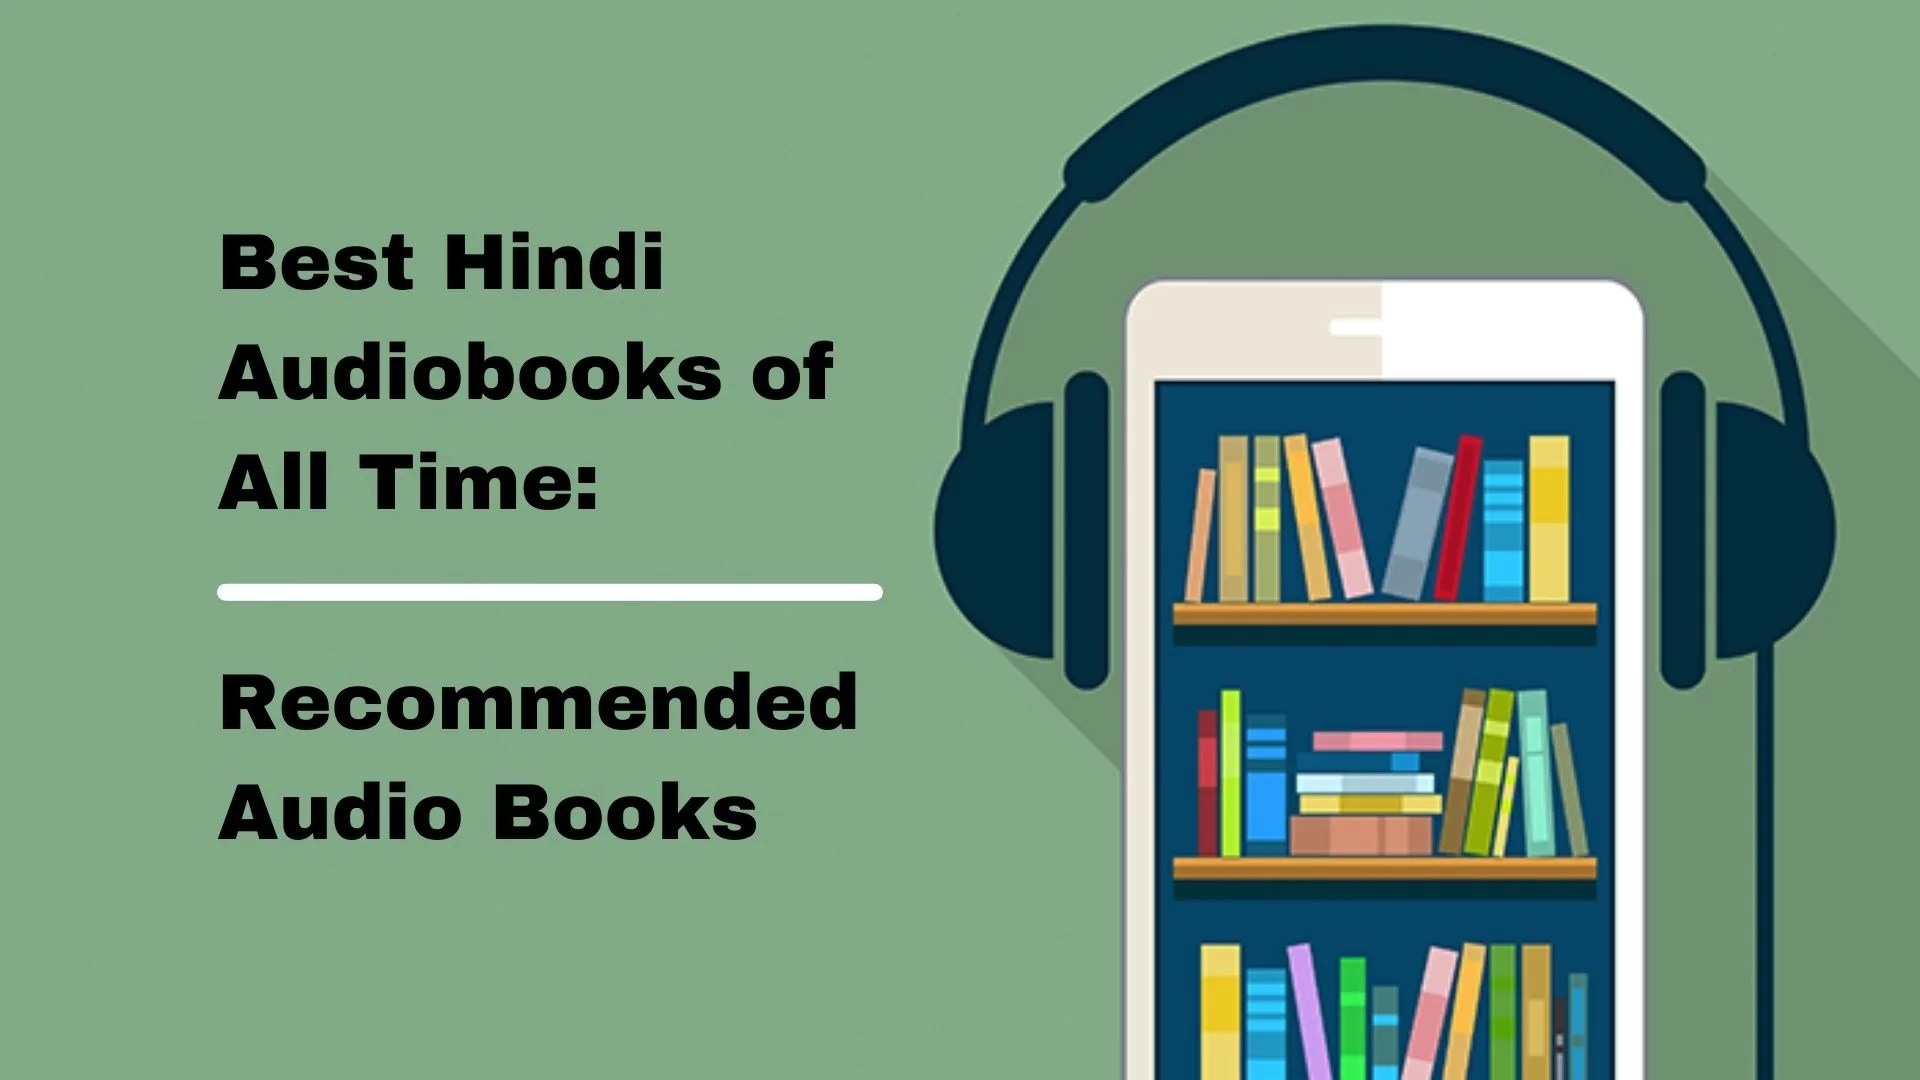 Best Hindi Audiobooks of All Time Recommended Audio Books